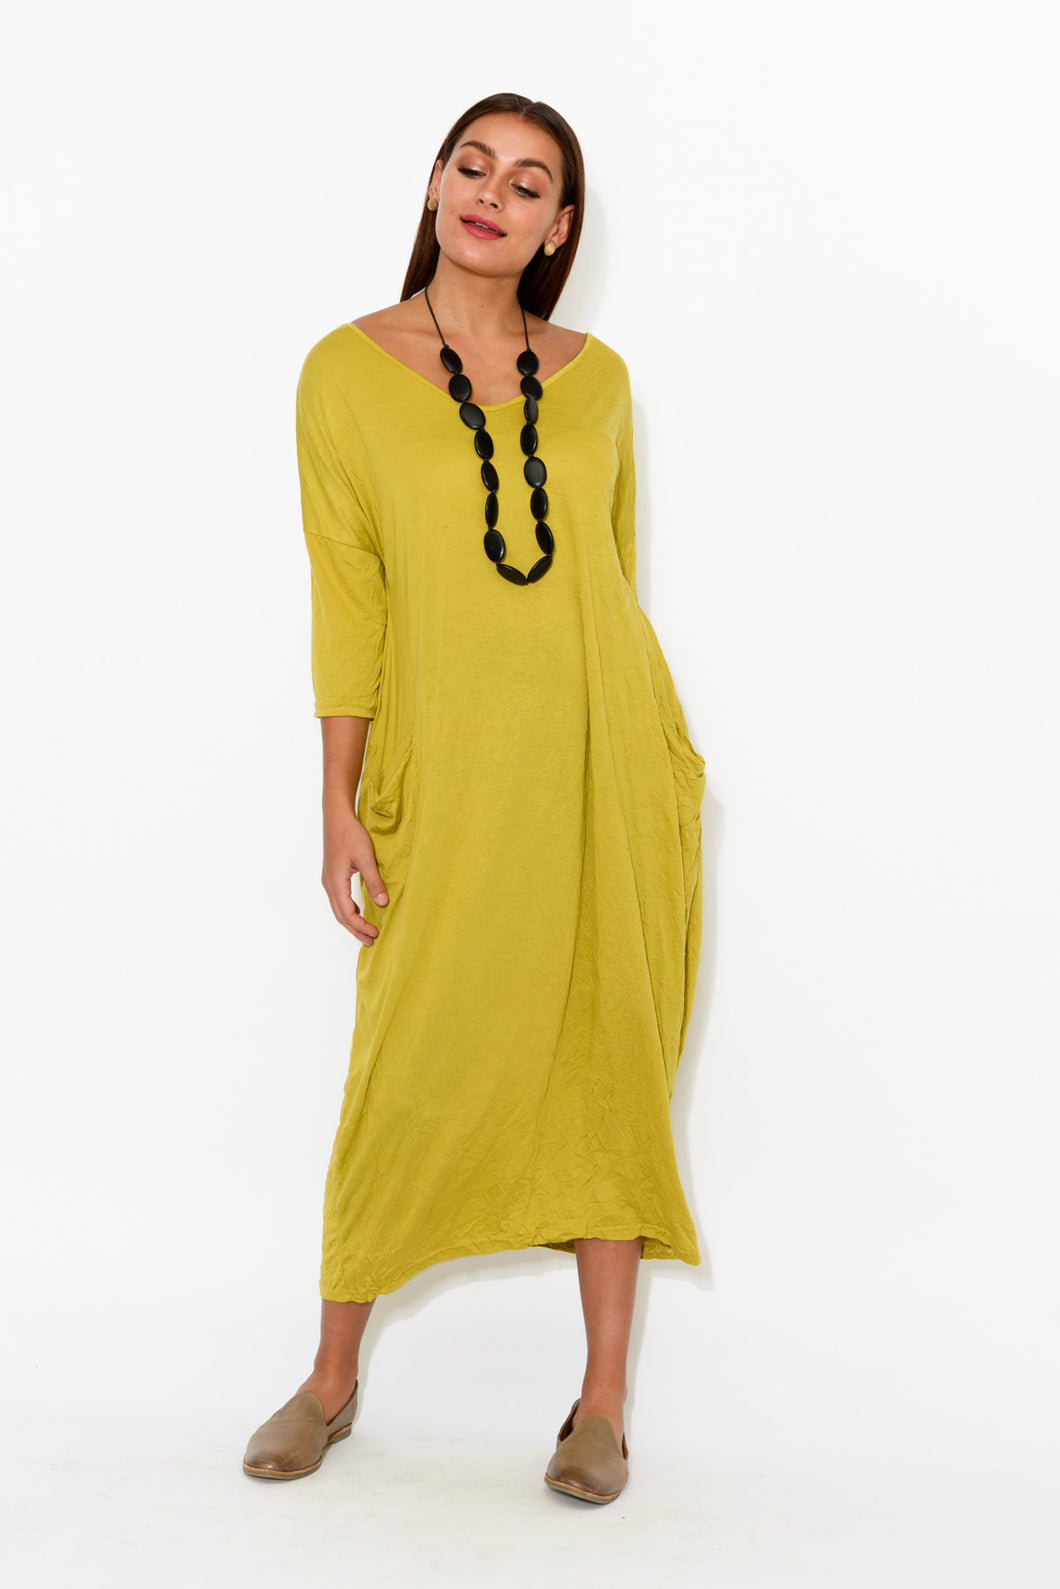 Chartreuse Sleeved Pocket Cotton Dress - Blue Bungalow